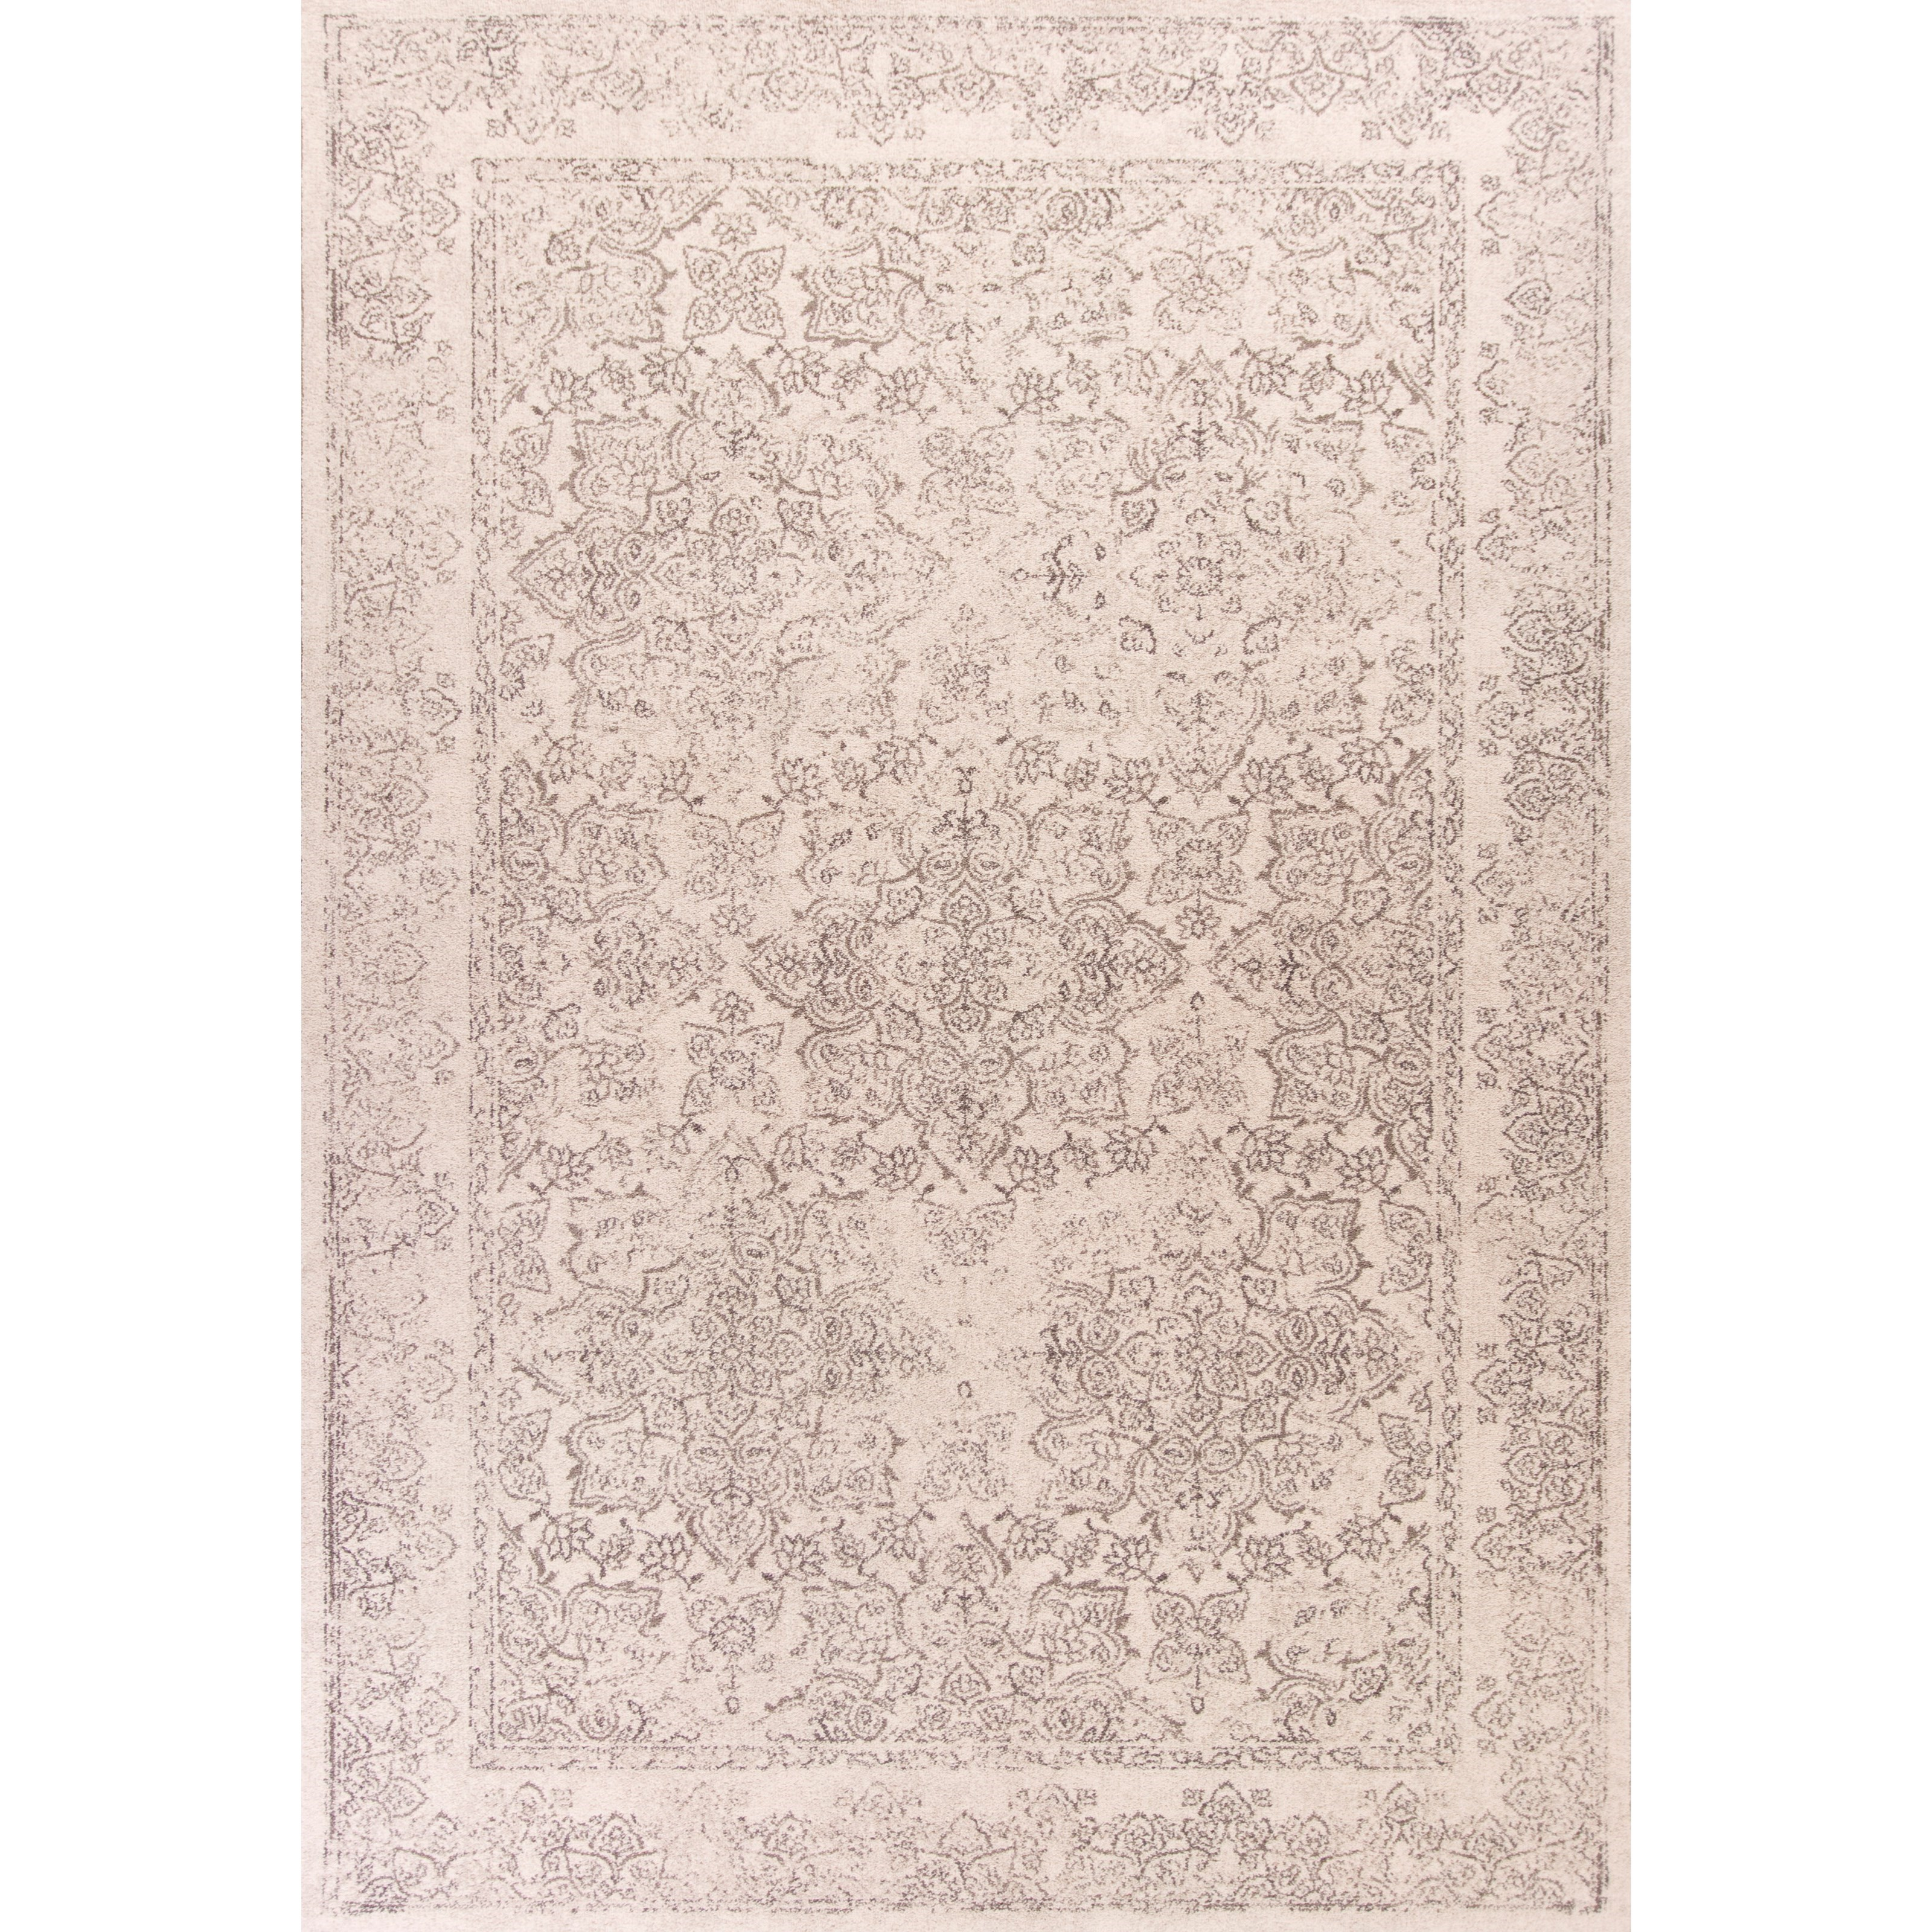 """Bob Mackie Home Vintage 3'3"""" X 4'11"""" Ivory Damascus Area Rug by Kas at Zak's Home"""